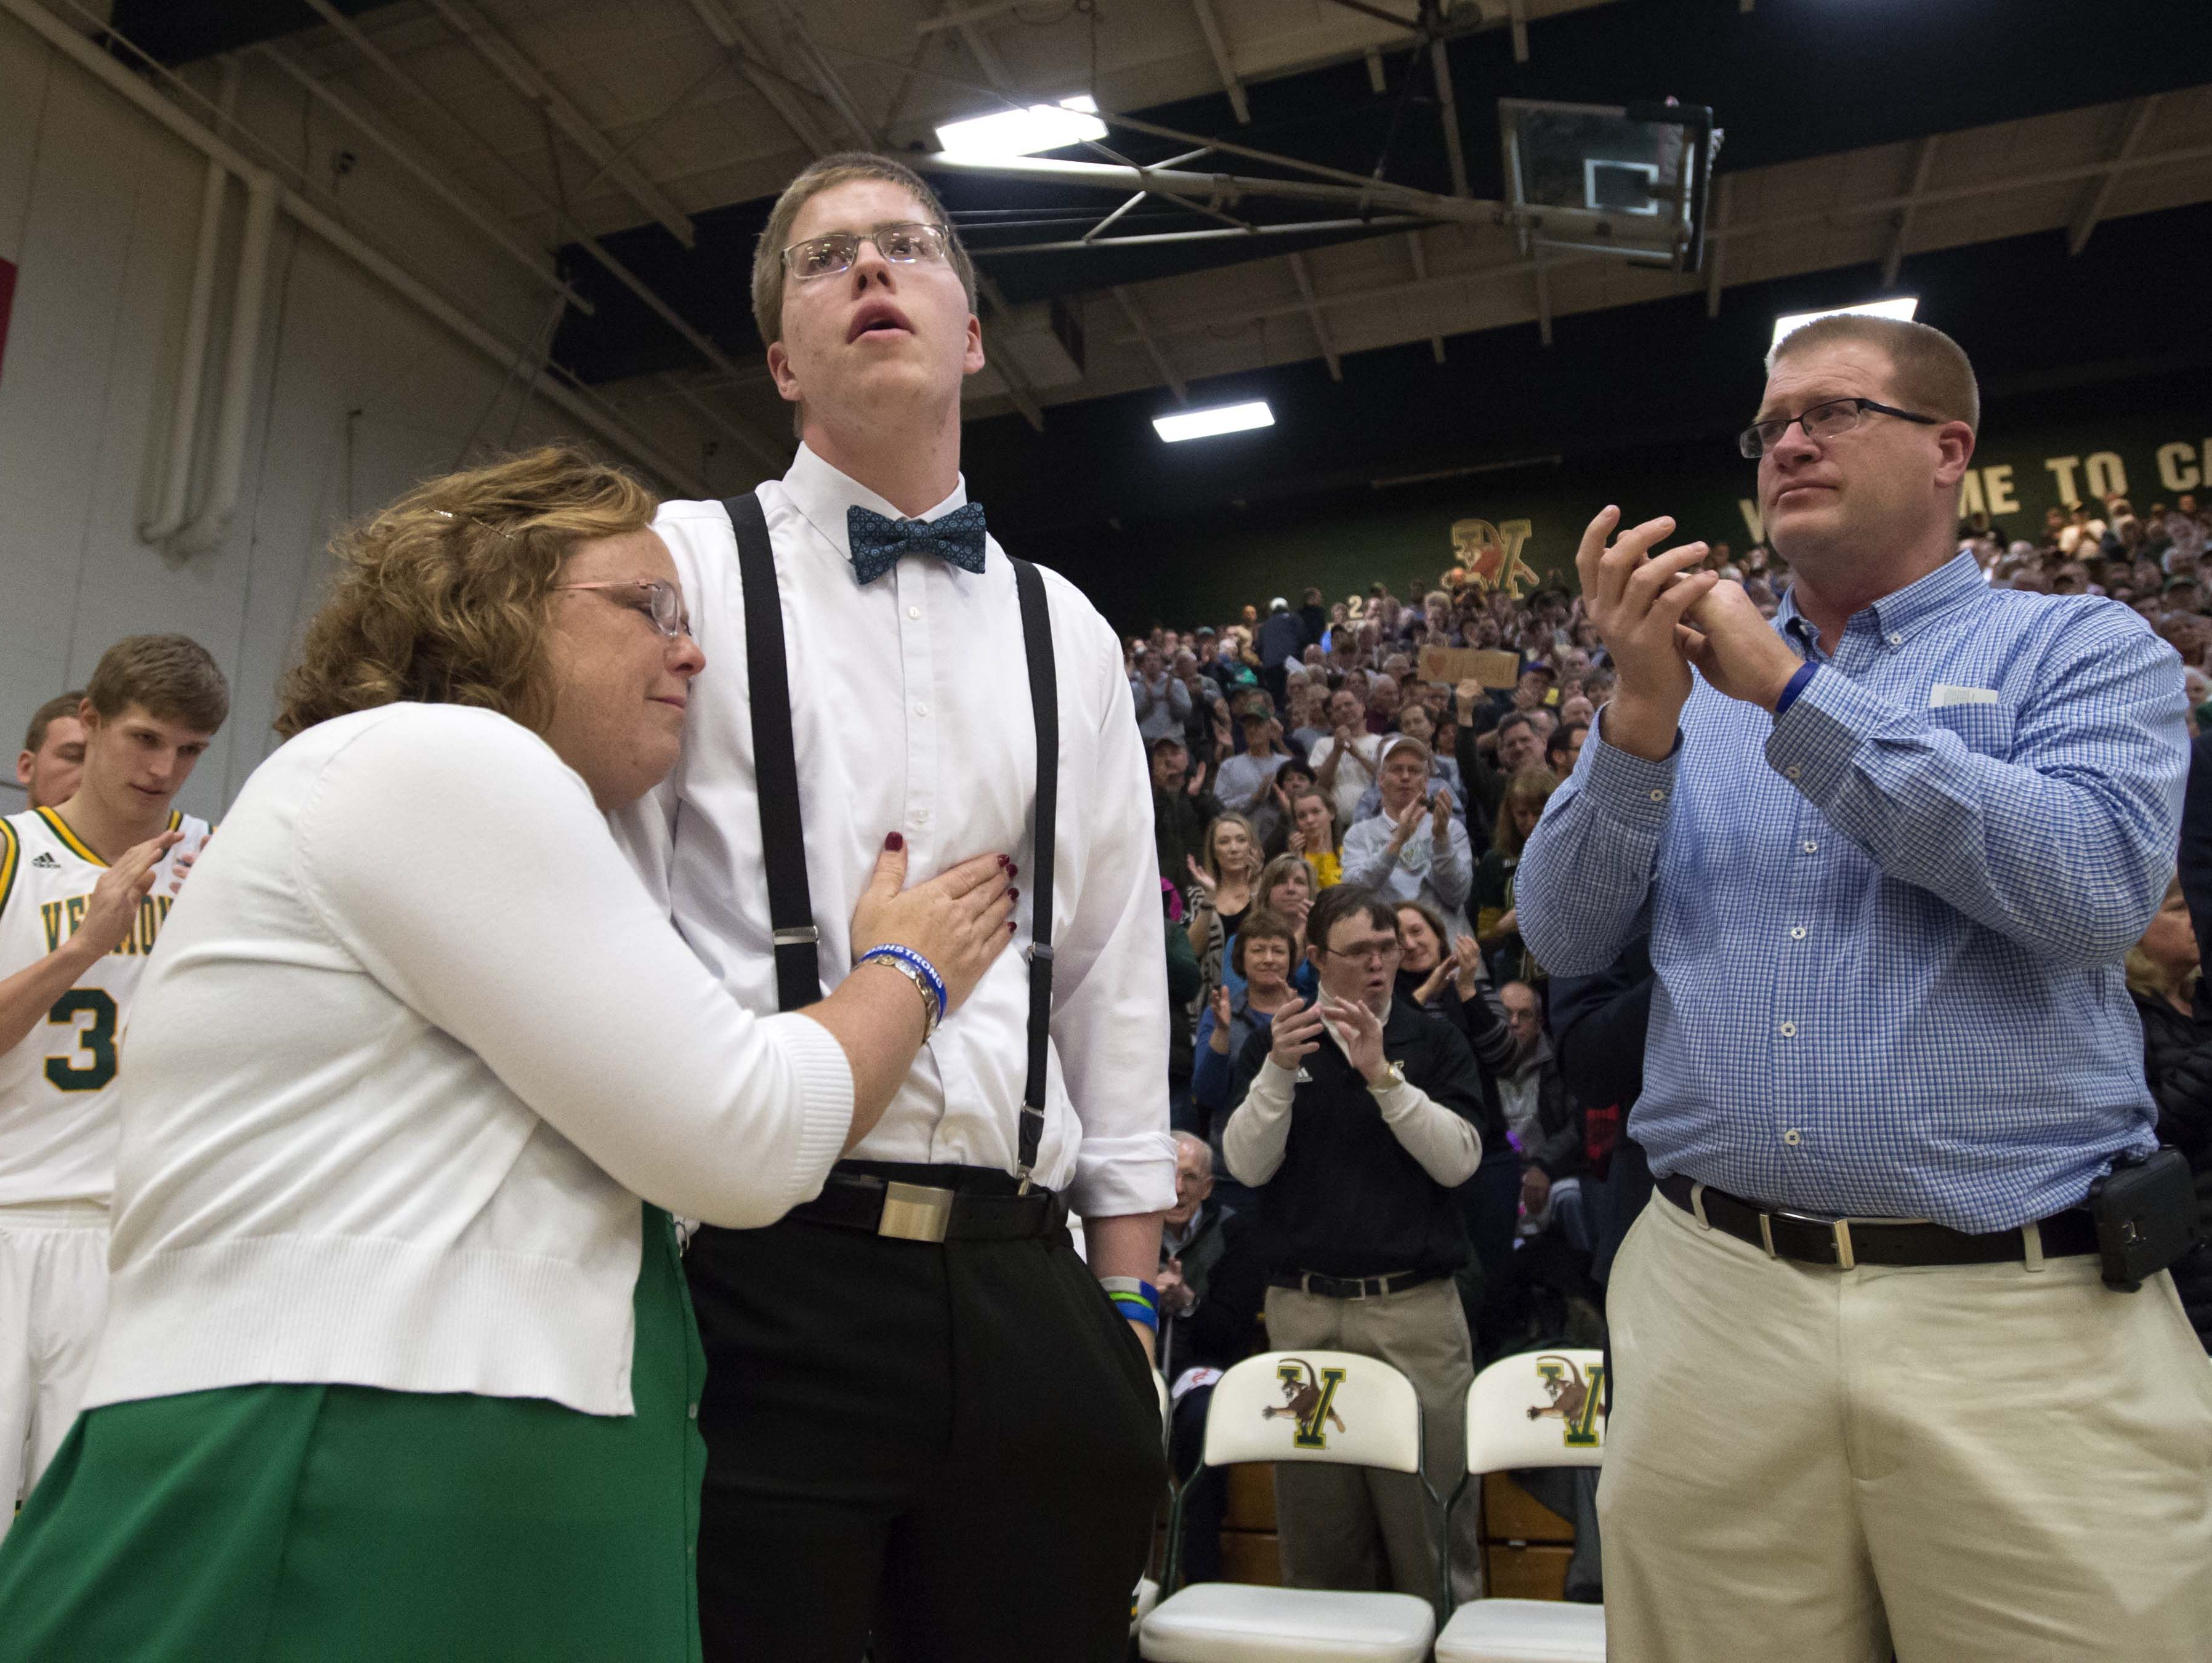 Josh Speidel gets a hug from his mother Lisa as his father Dave looks on as he is introduced before the start of the University of Vermont's game against Stony Brook, Jan. 30, 2016.